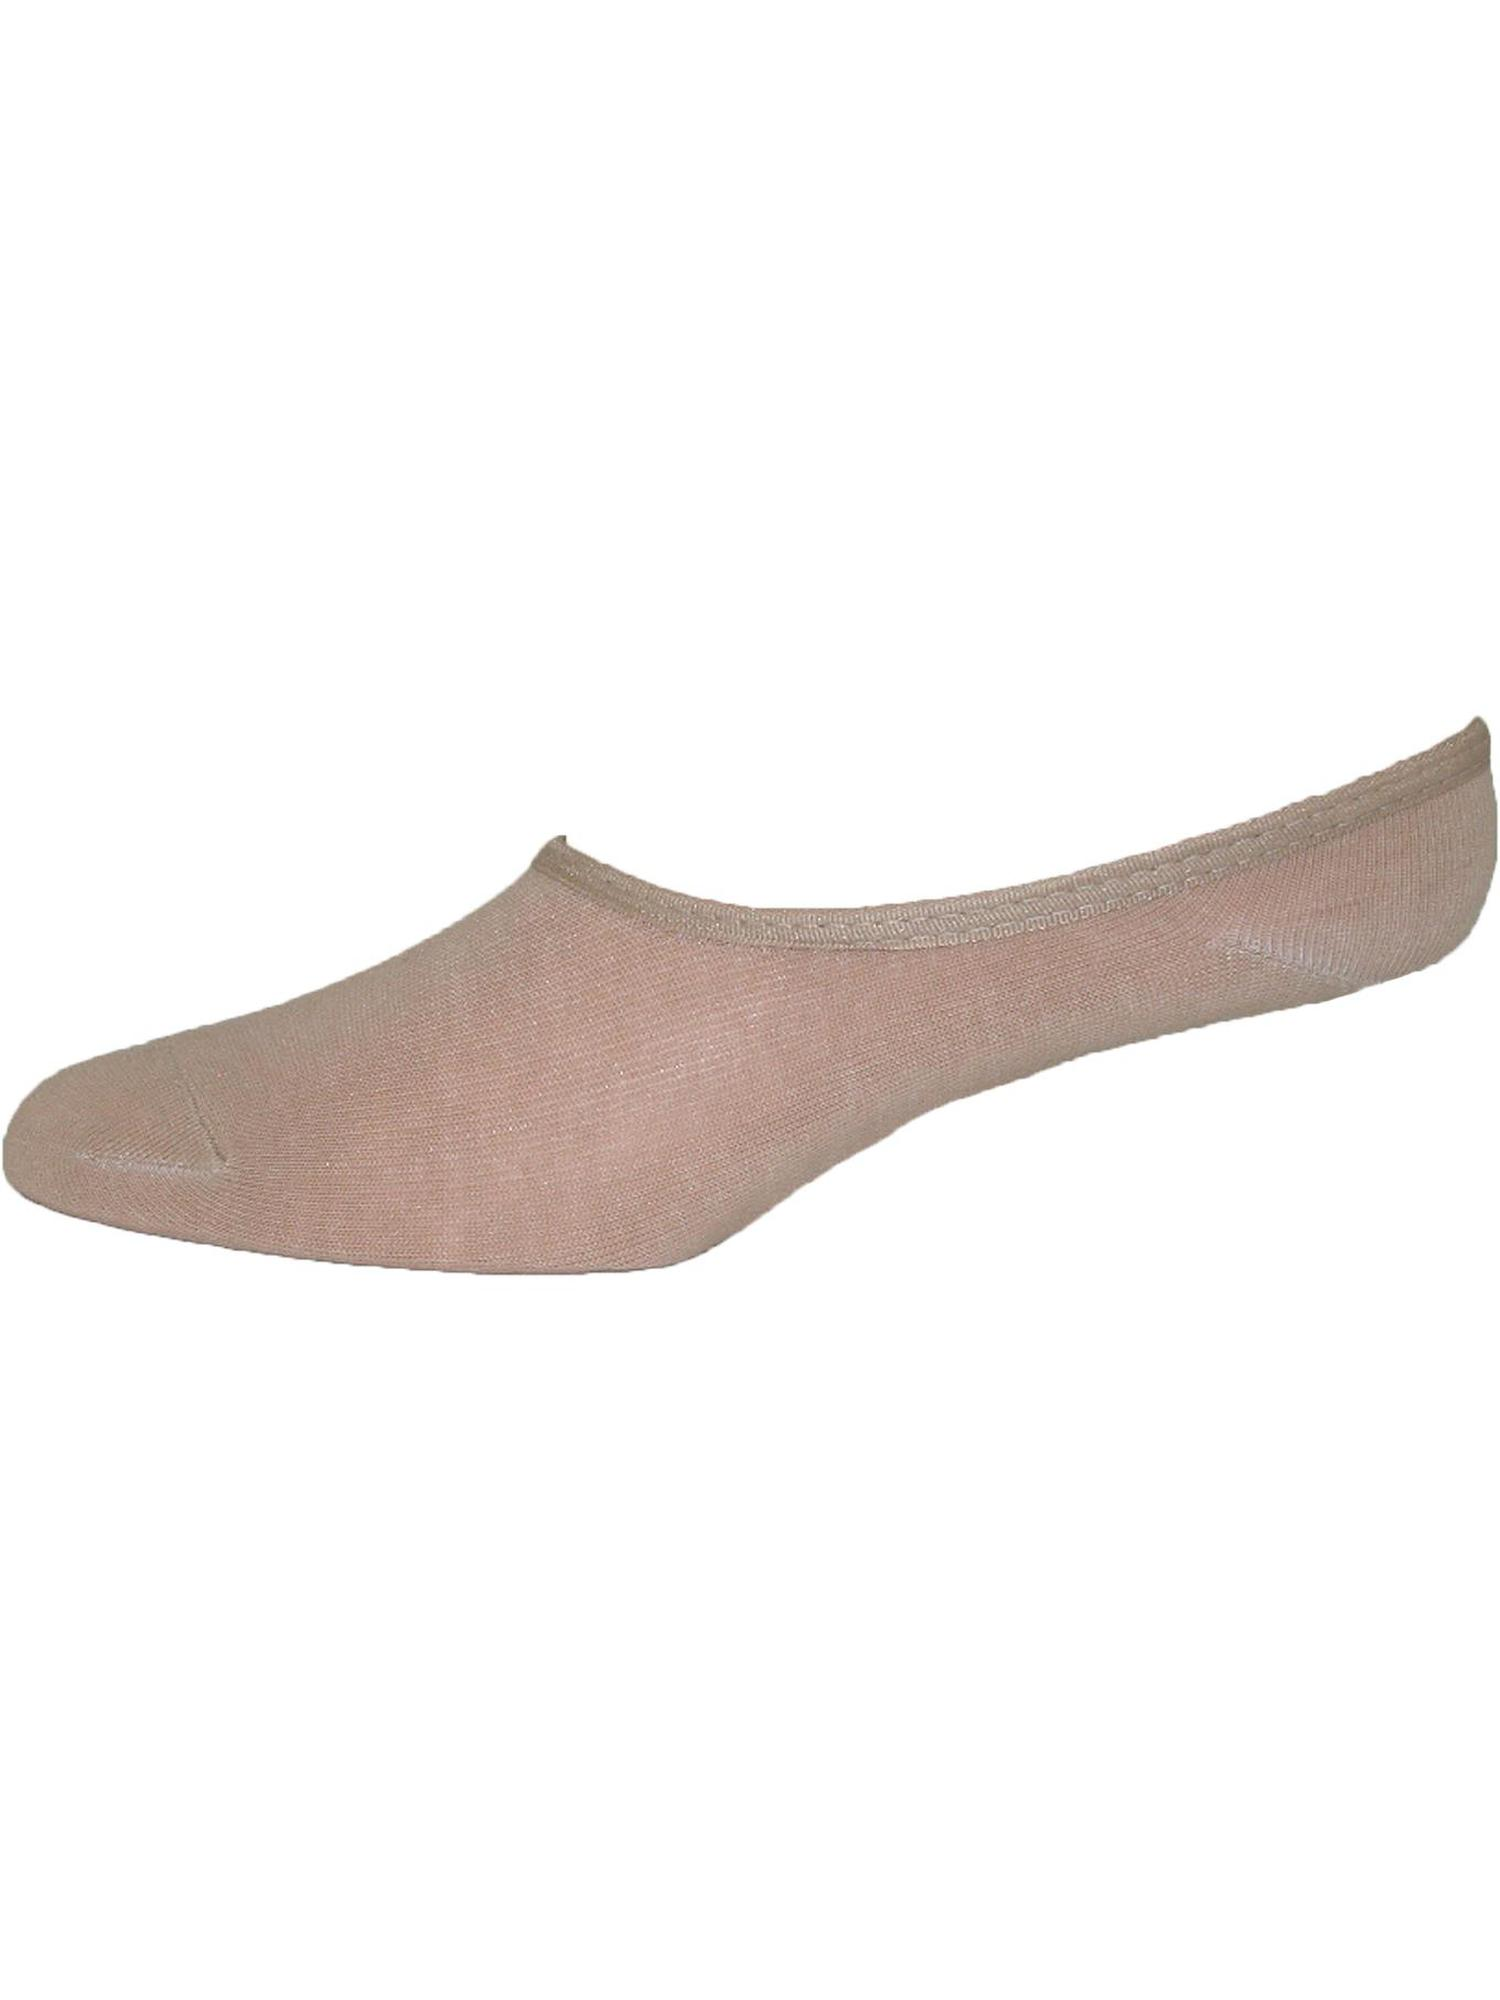 Size one size Women's Cotton Nude Low Cut Ballet Sock Liner